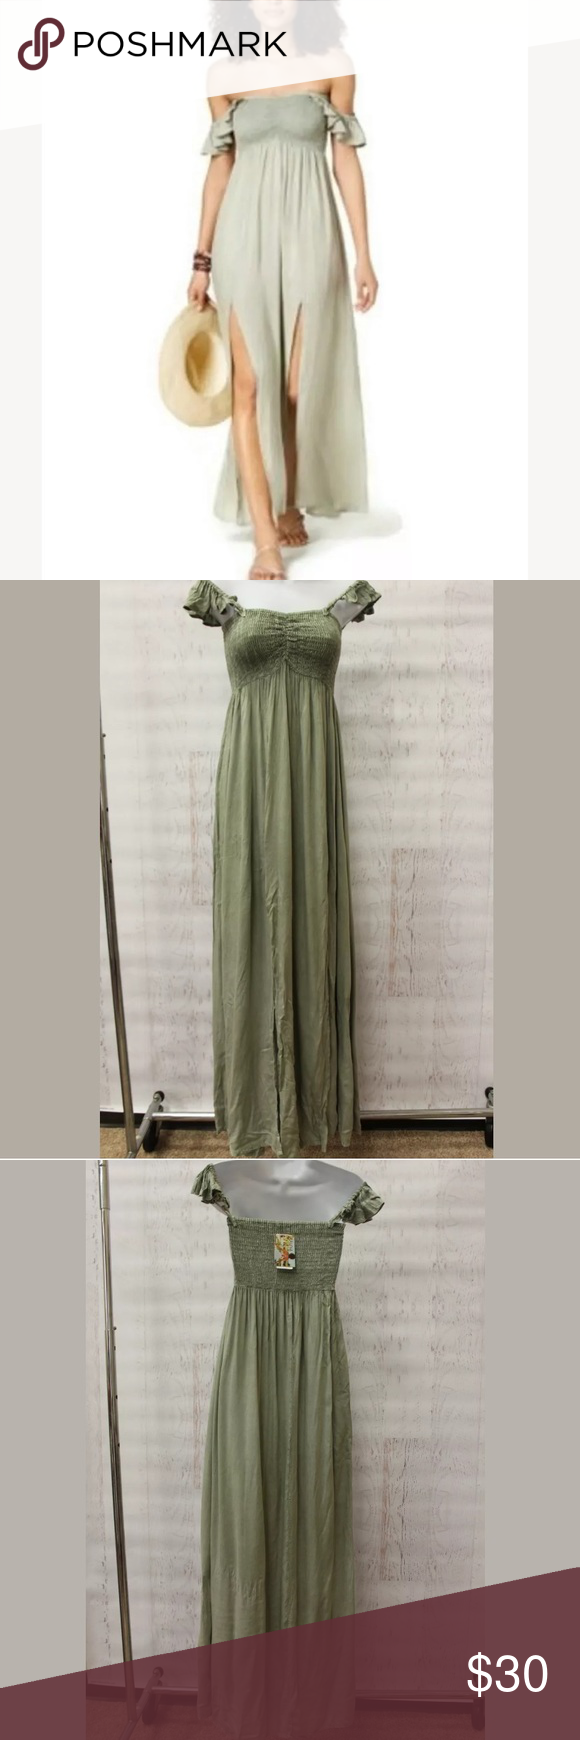 a308a6e9ce Raviya Off The Shoulder Maxi Cover Up Swim Dress Brand new with tags! B445  S B446 M Sage Green Only on pm Raviya Swim Coverups